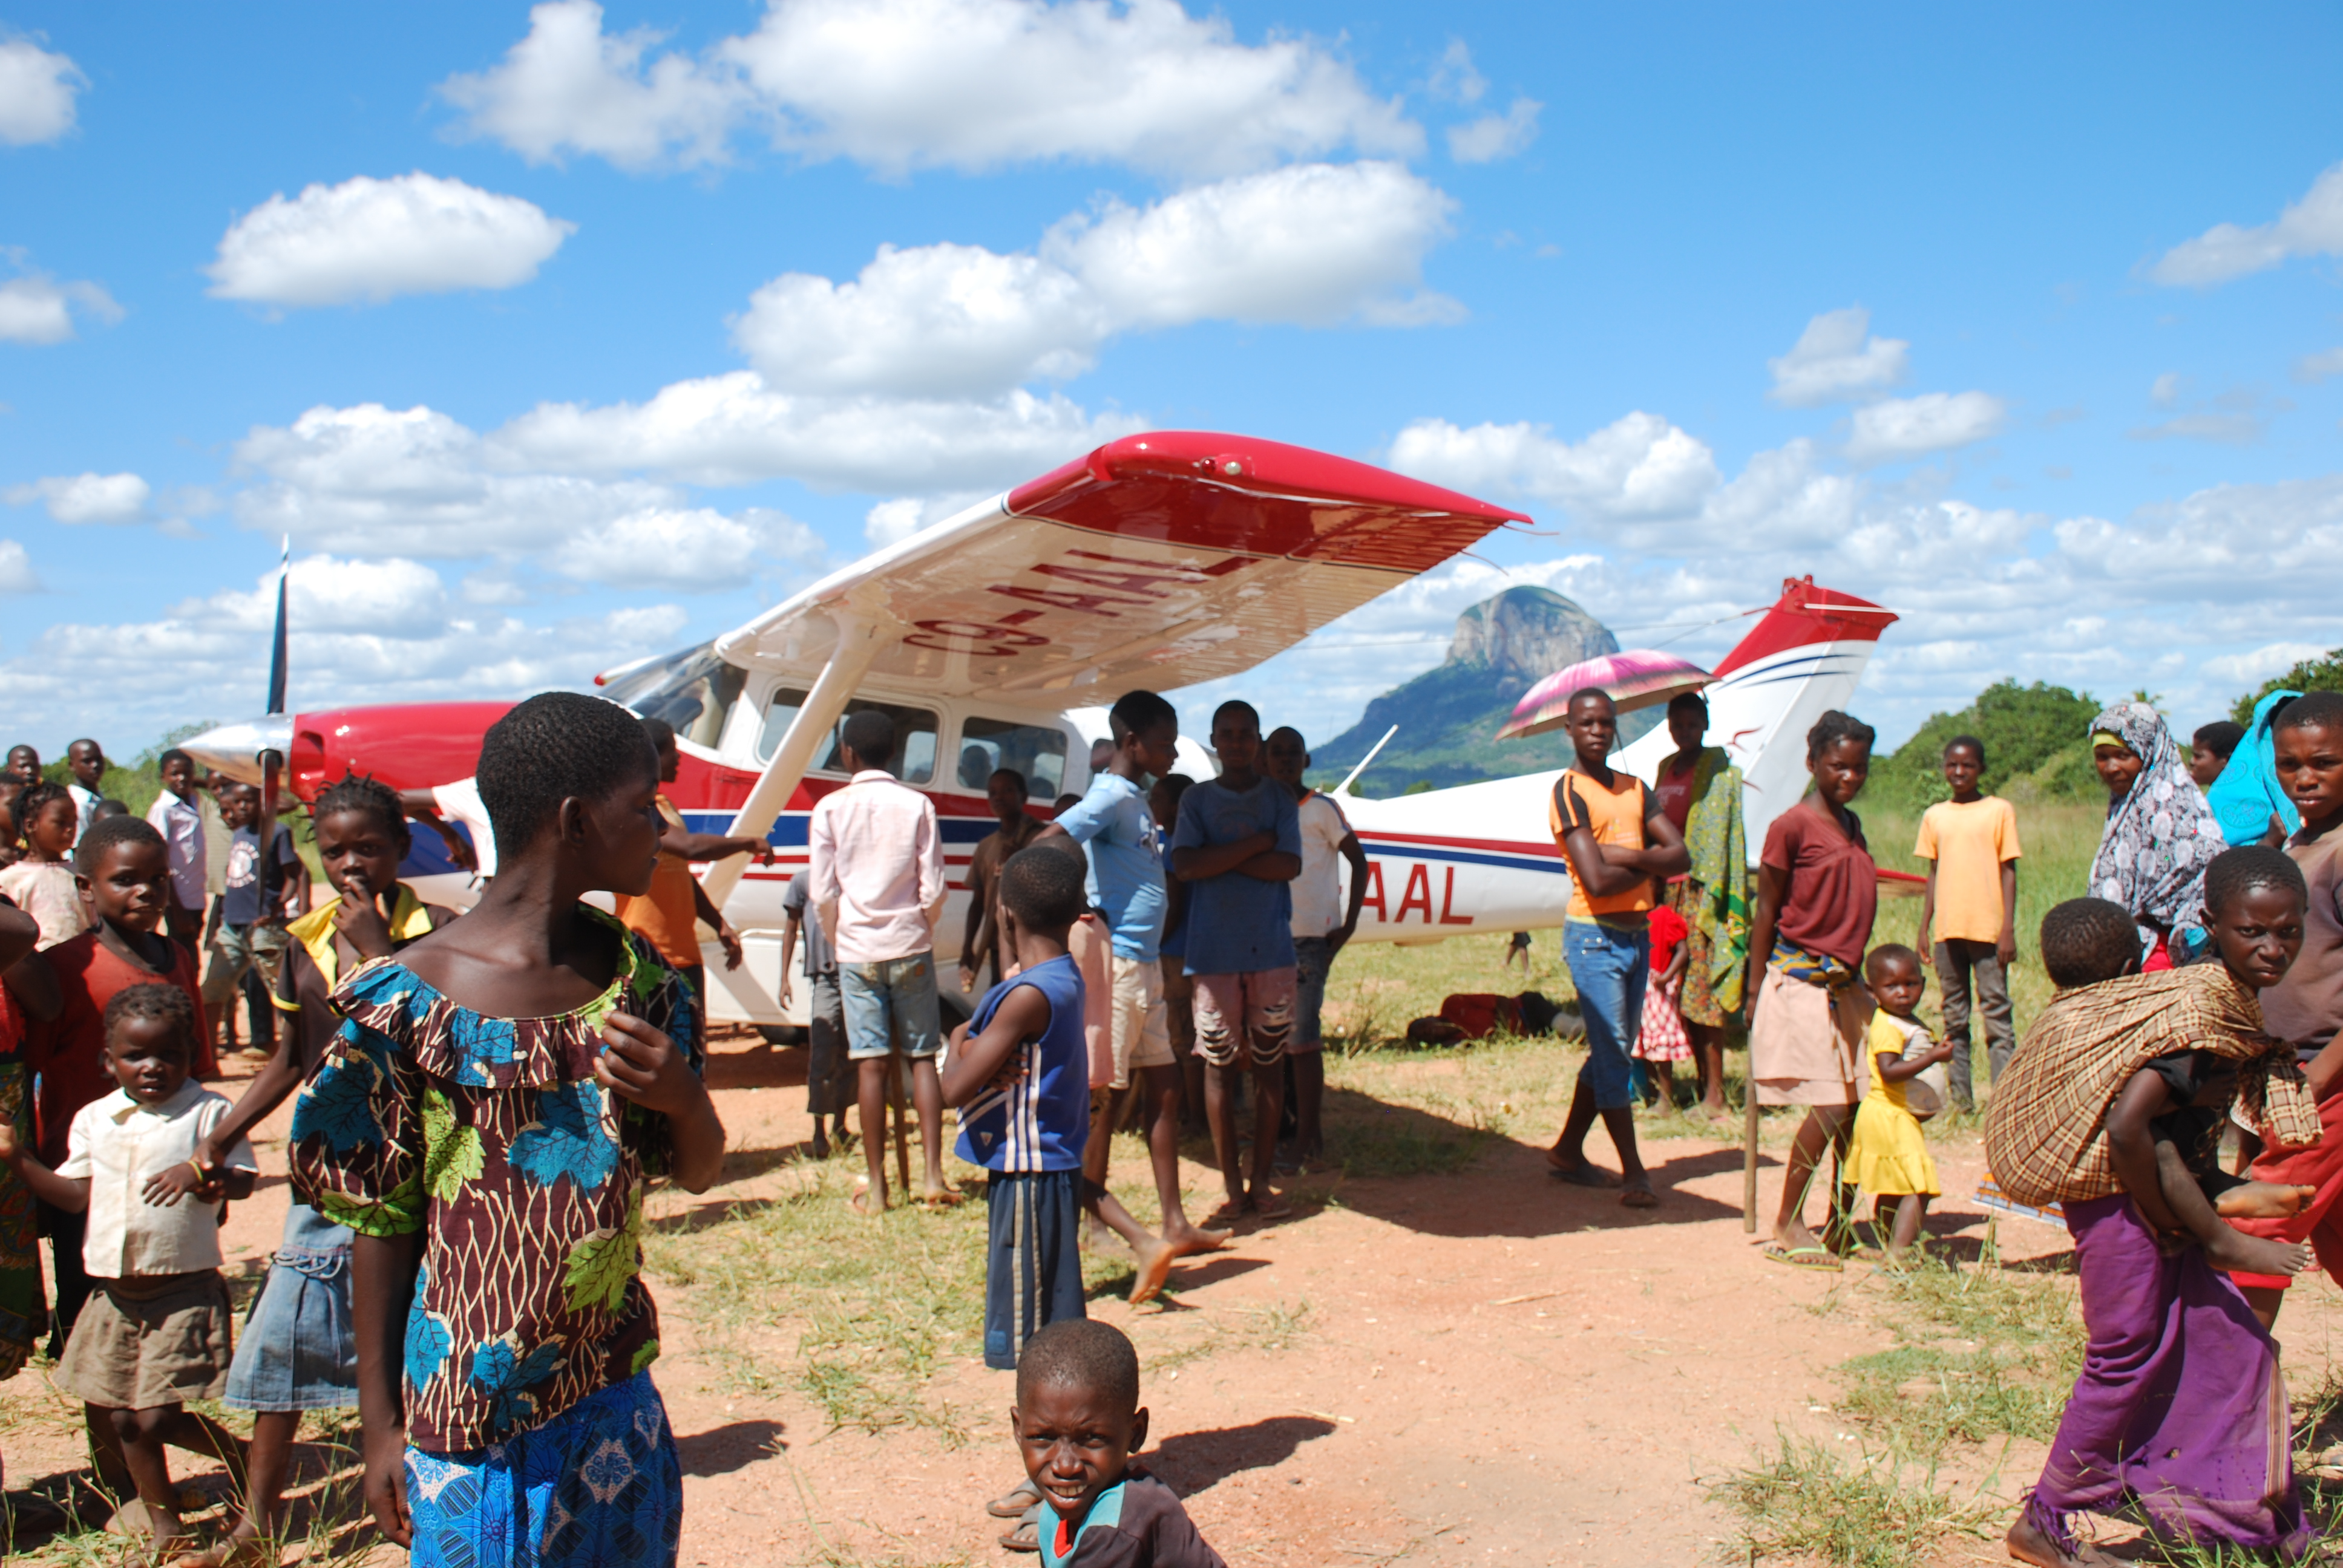 Ministry builds relationships with Mozambican villages through medical aviation